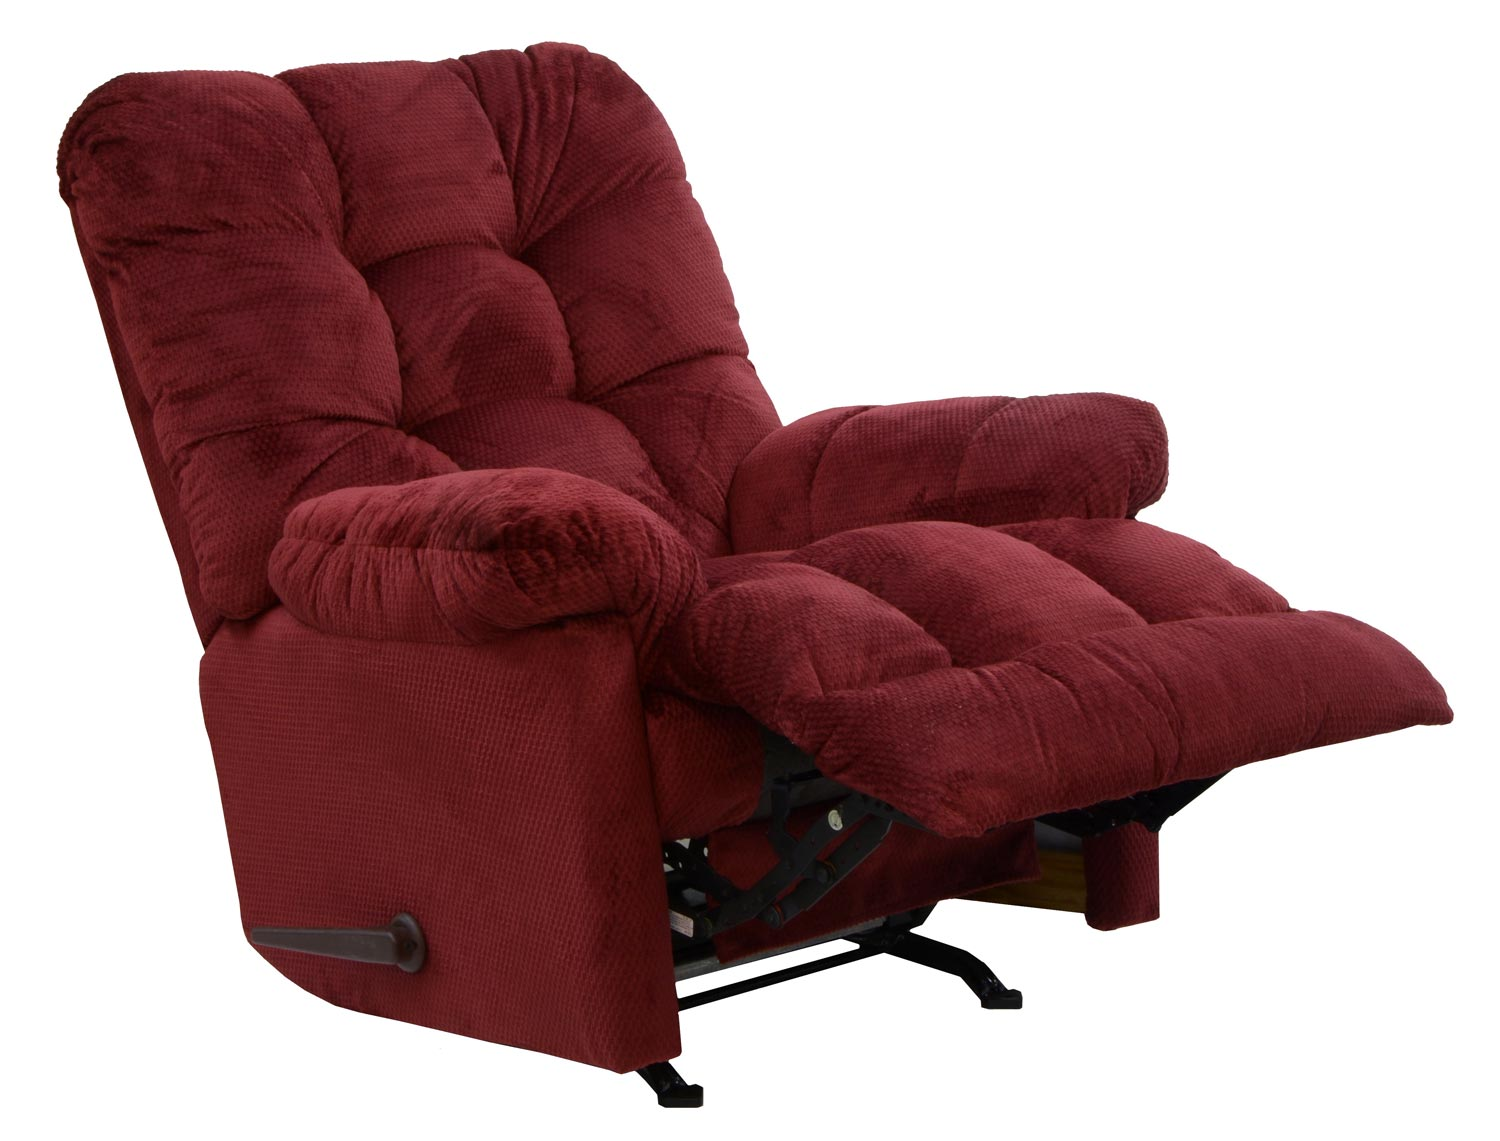 Catnapper nettles chaise rocker recliner with deluxe heat for 1x super comfort recliner chaise